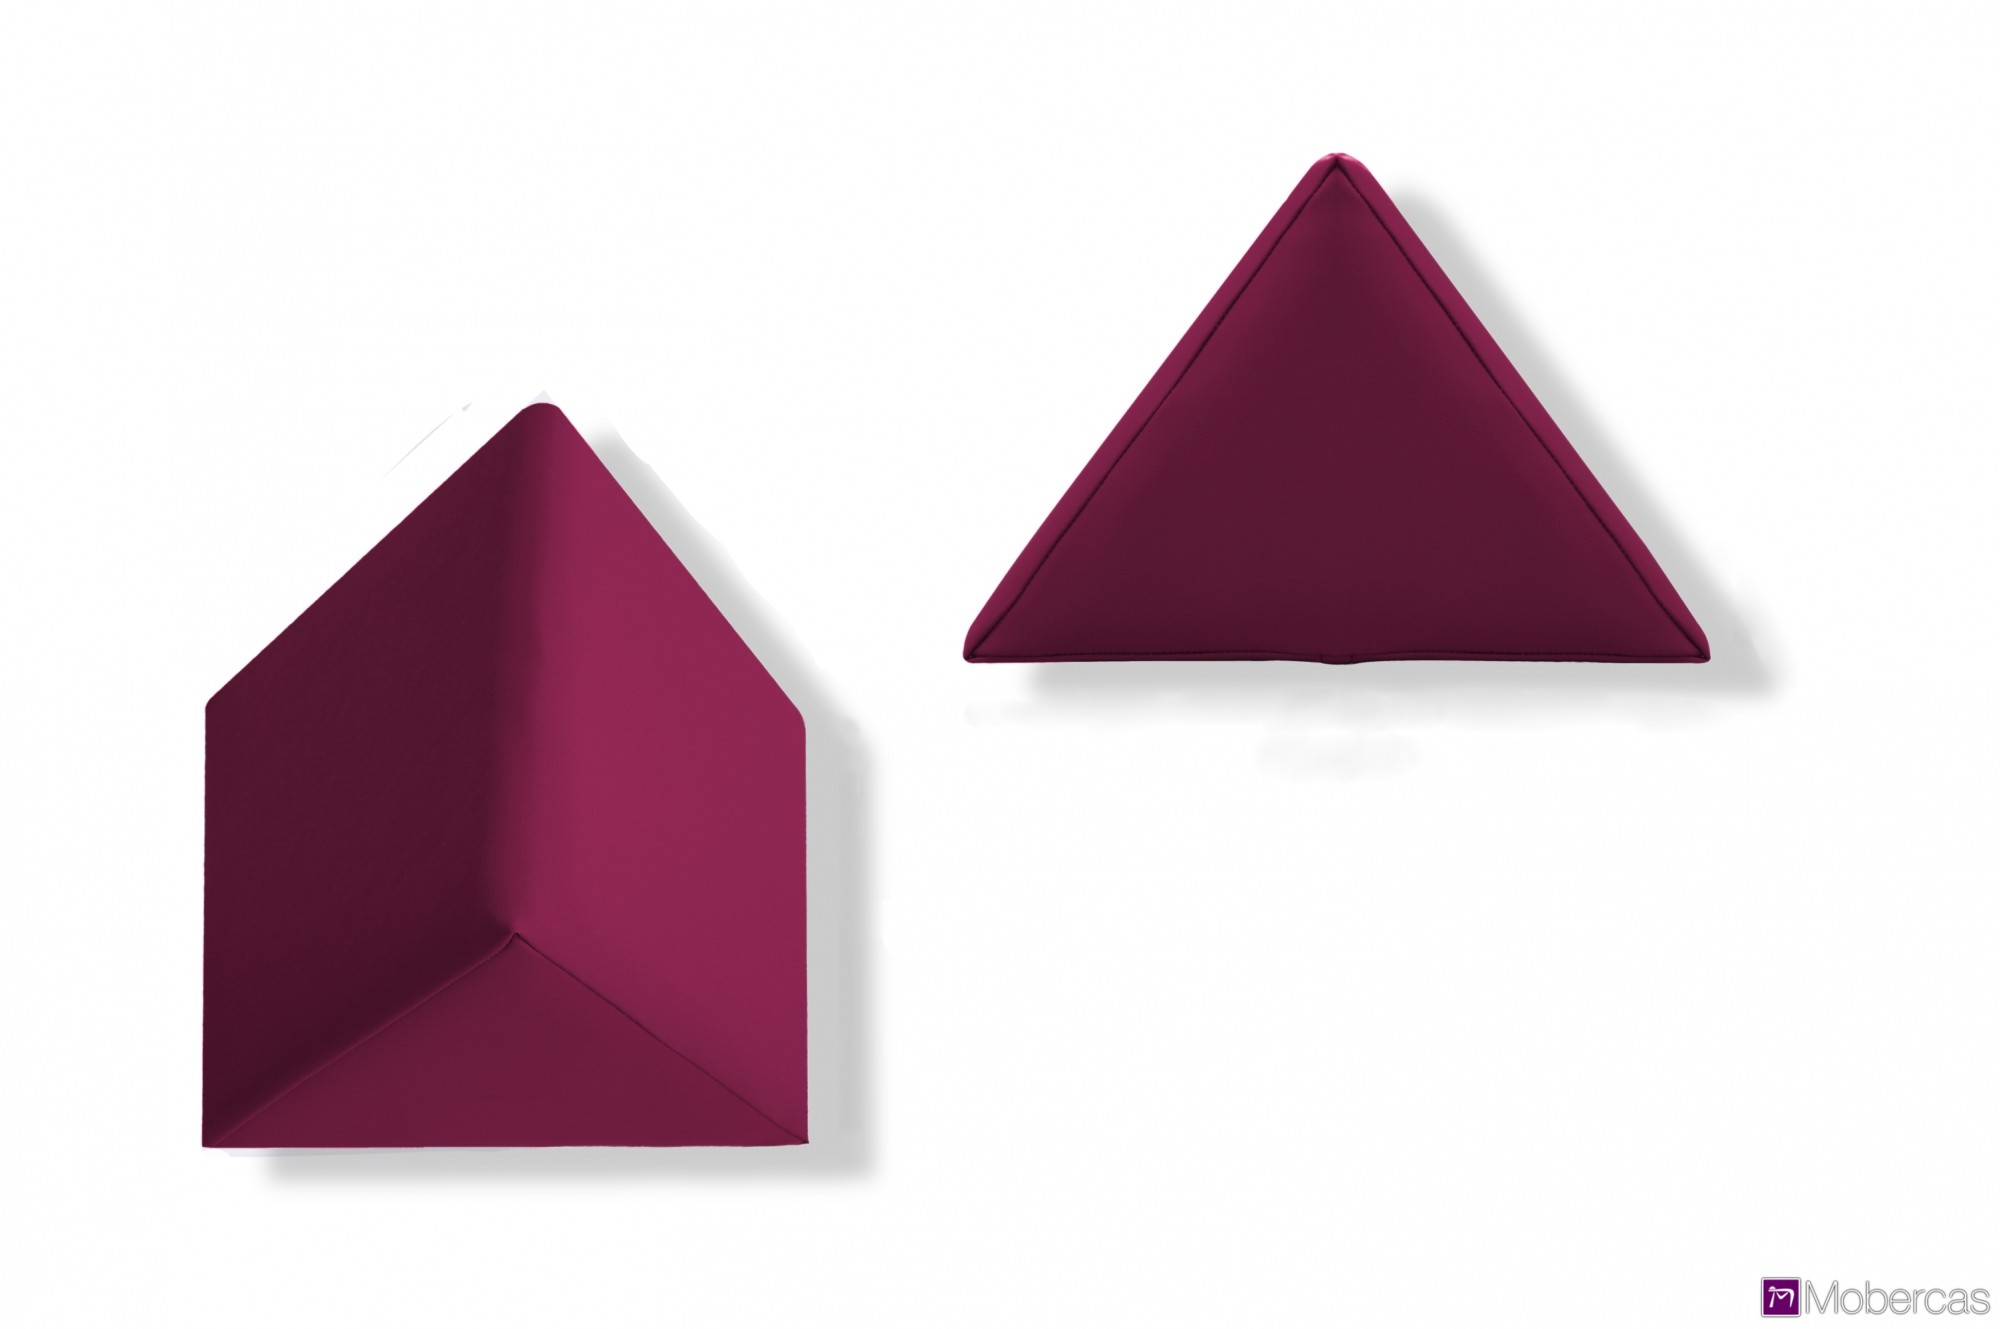 coussin-petit-triangle-2881